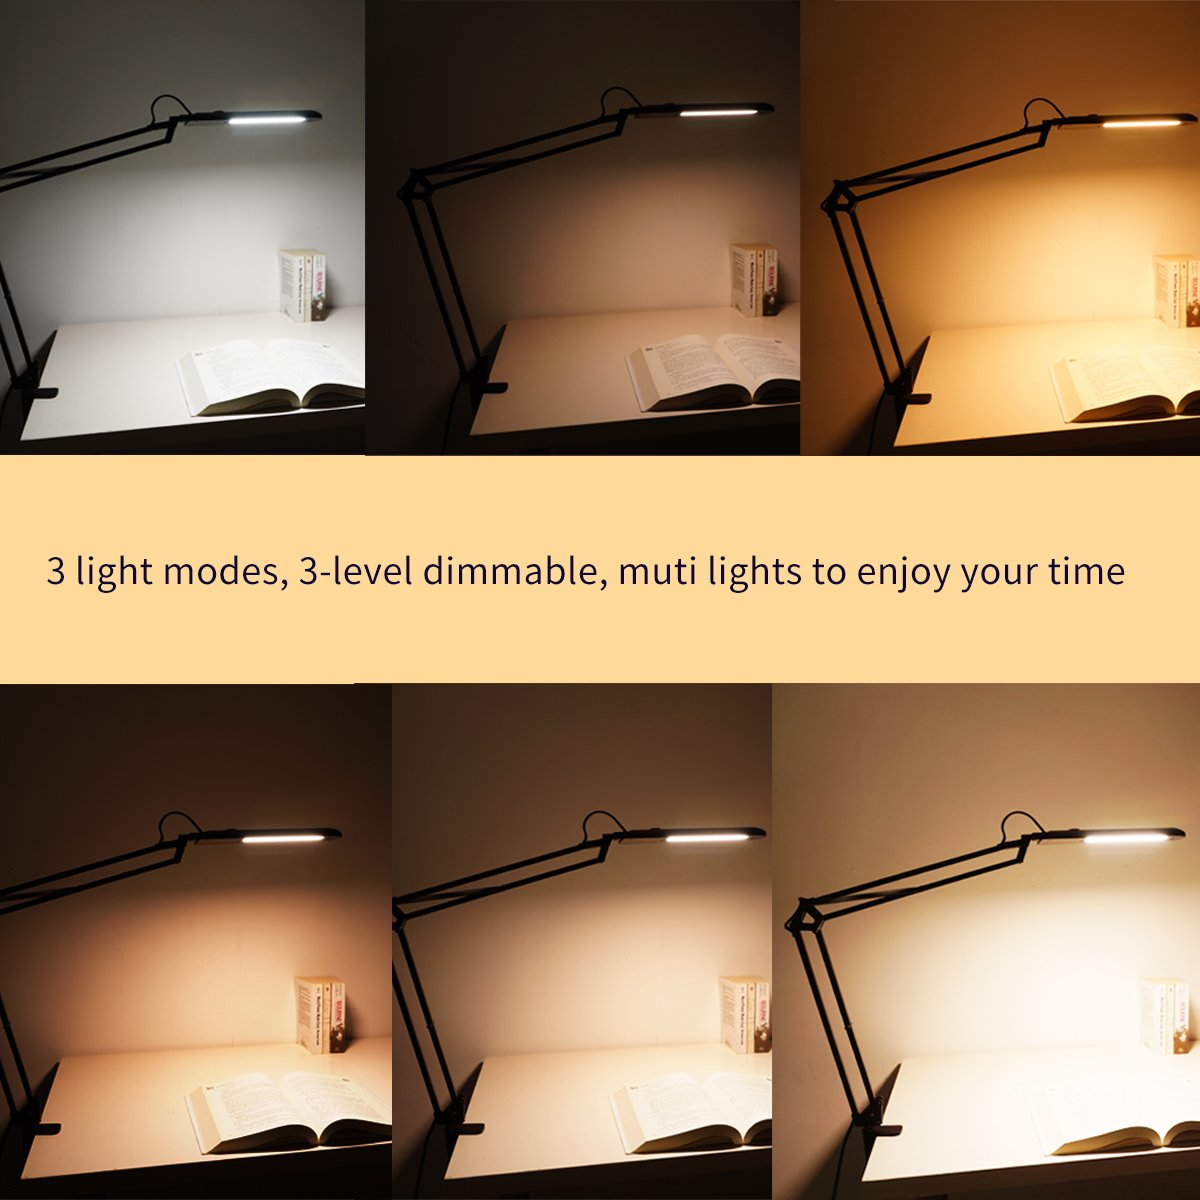 ToJane LED Architect Desk Lamp,Drafting Clamp on Table Lamp, 9 Light Modes Dimmable Work/Reading Light by ToJane (Image #3)